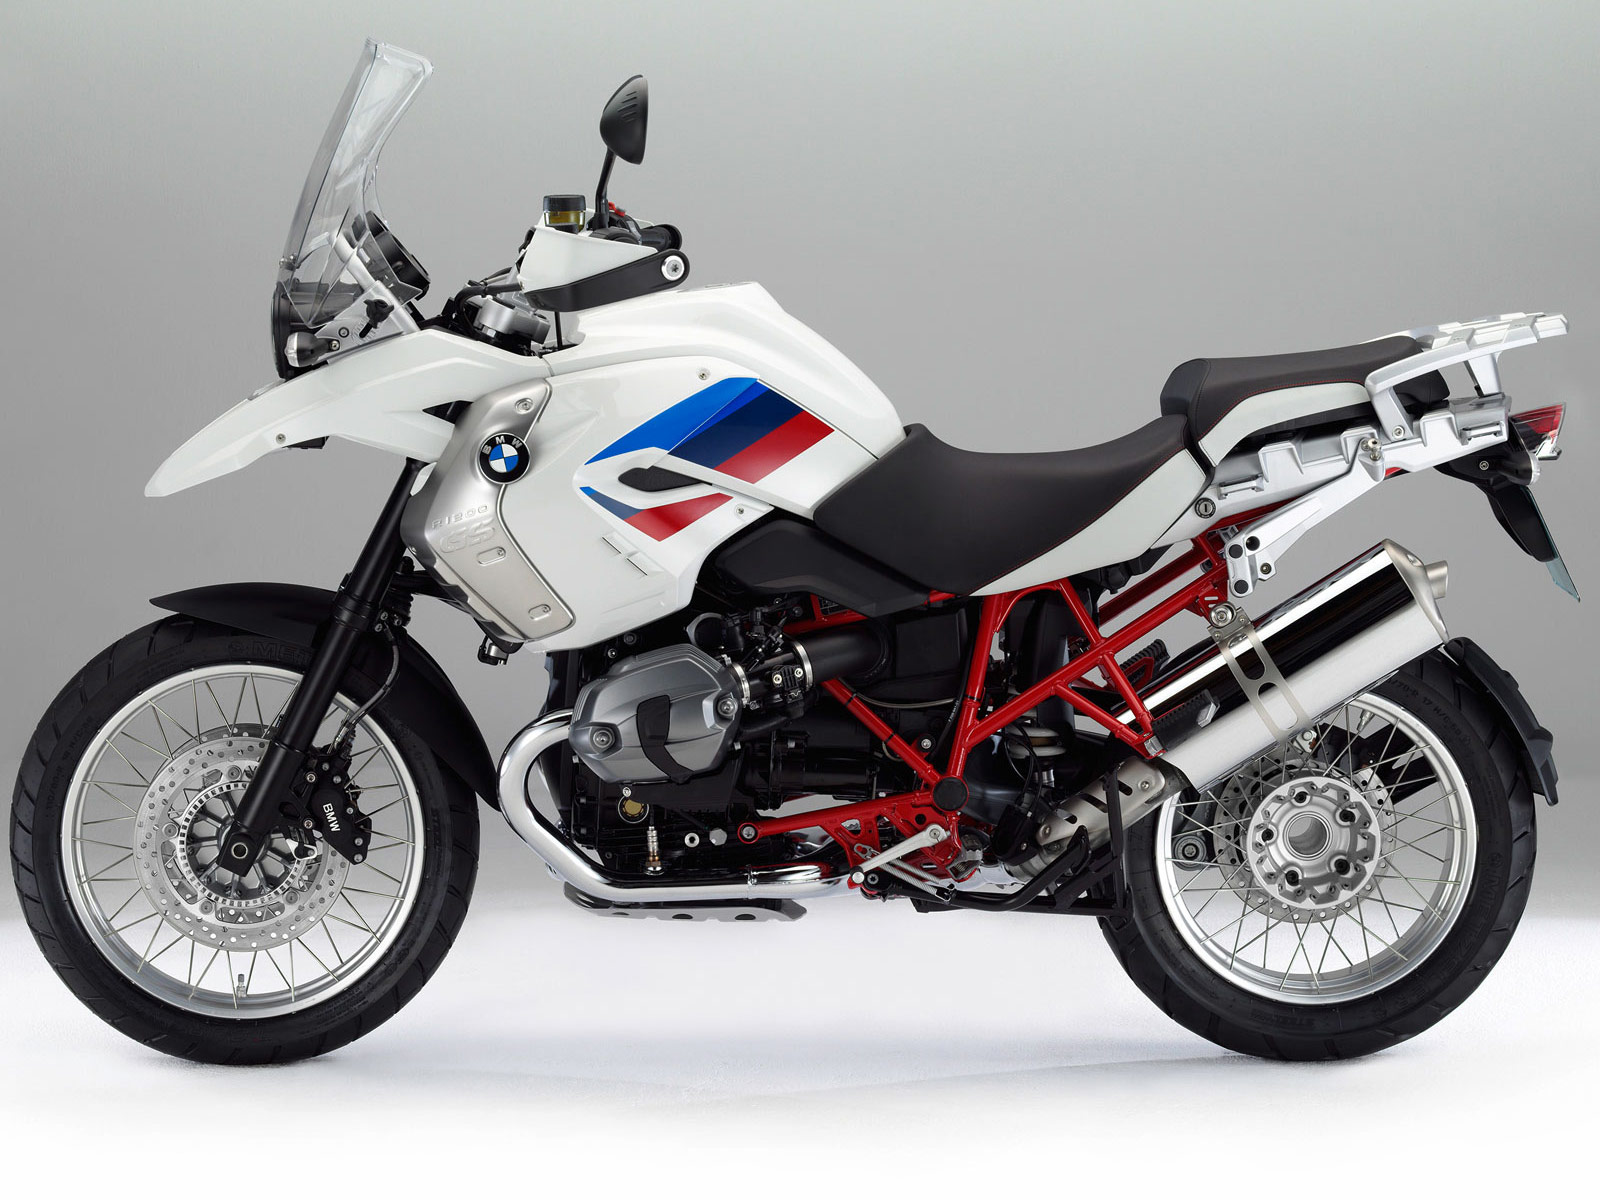 2012 Bmw R1200gs Rallye Special Edition 1 Series Editions - Medium